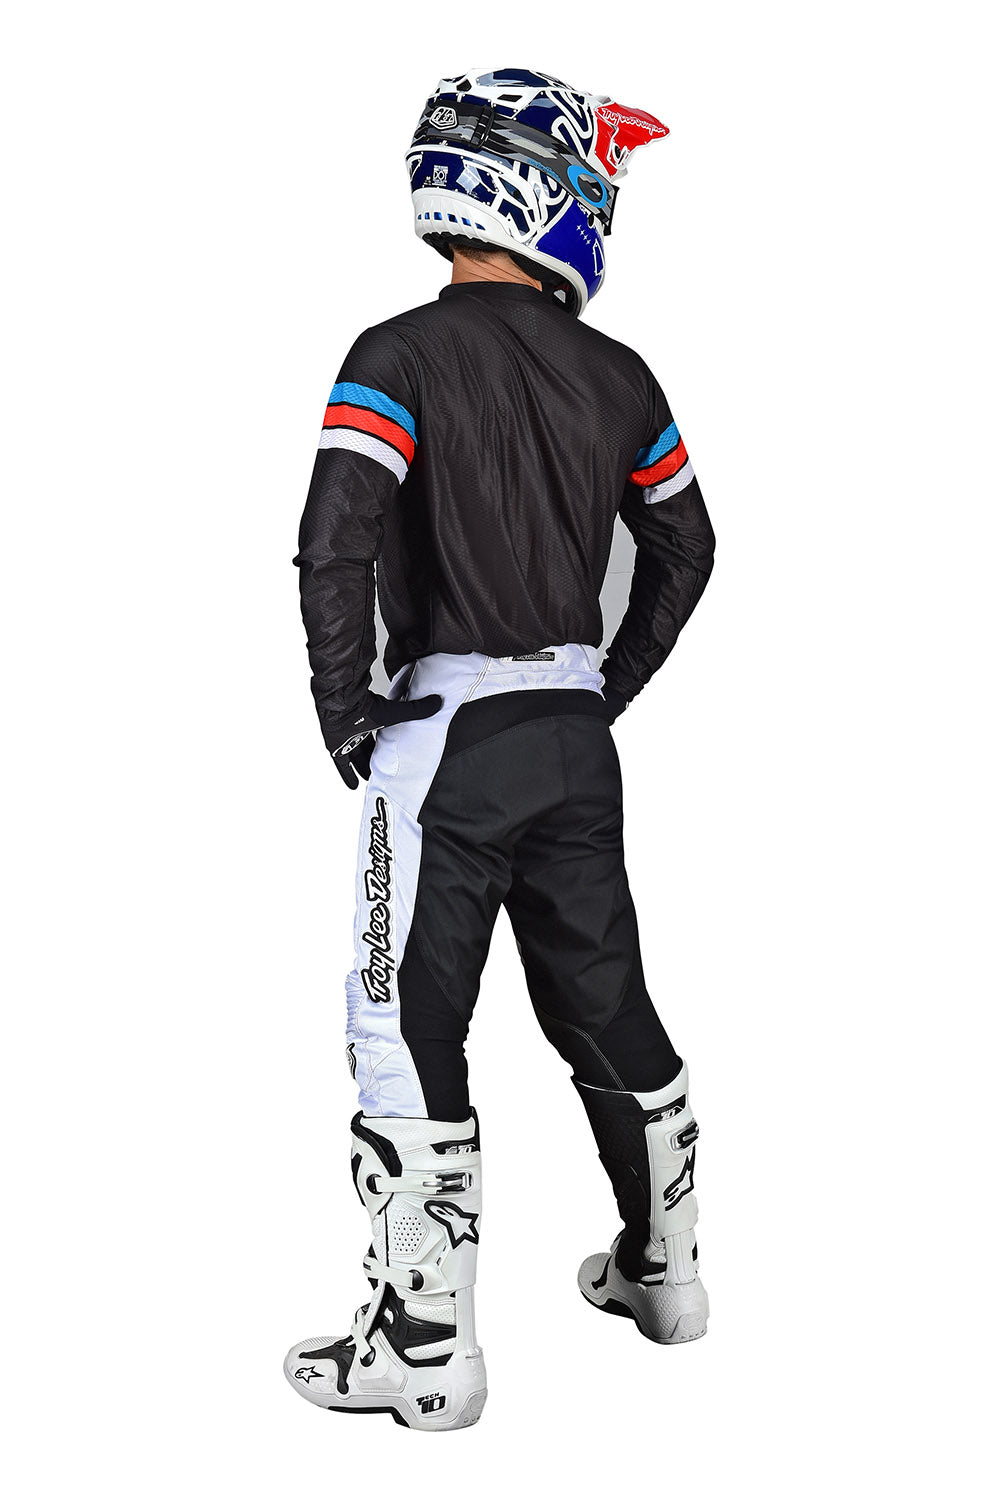 GP Air Saddleback Kit